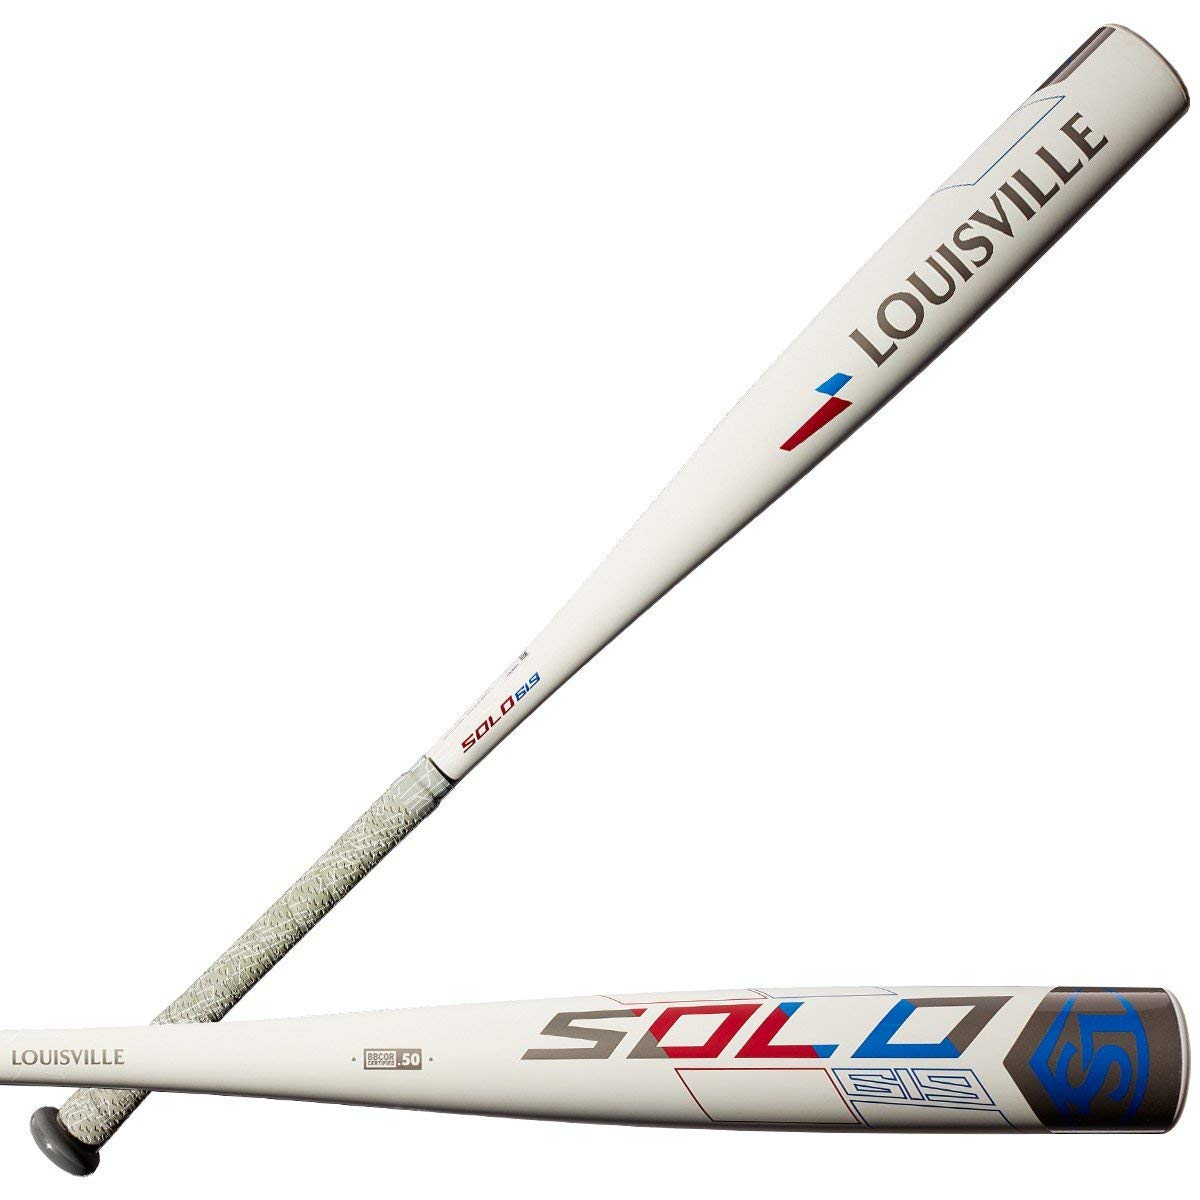 louisville-slugger-2019-solo-619-3-bbcor-baseball-bat-32-inch-29-oz WTLBBS619B332 Louisville 887768712778 The new Solo 619 brings the speed you need in your